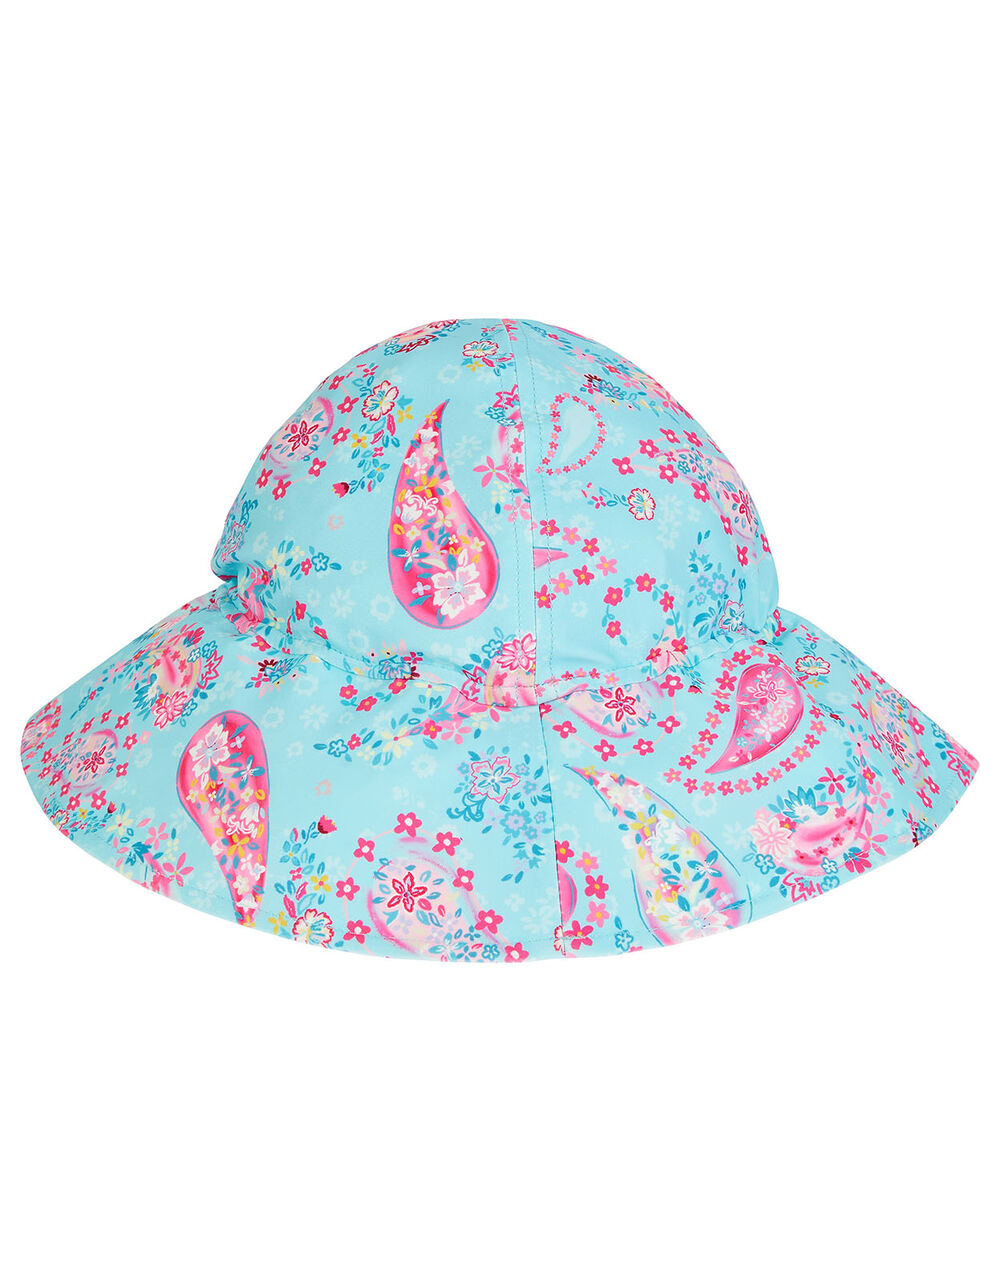 Baby Paisley Print Sun Hat, Blue (TURQUOISE), large